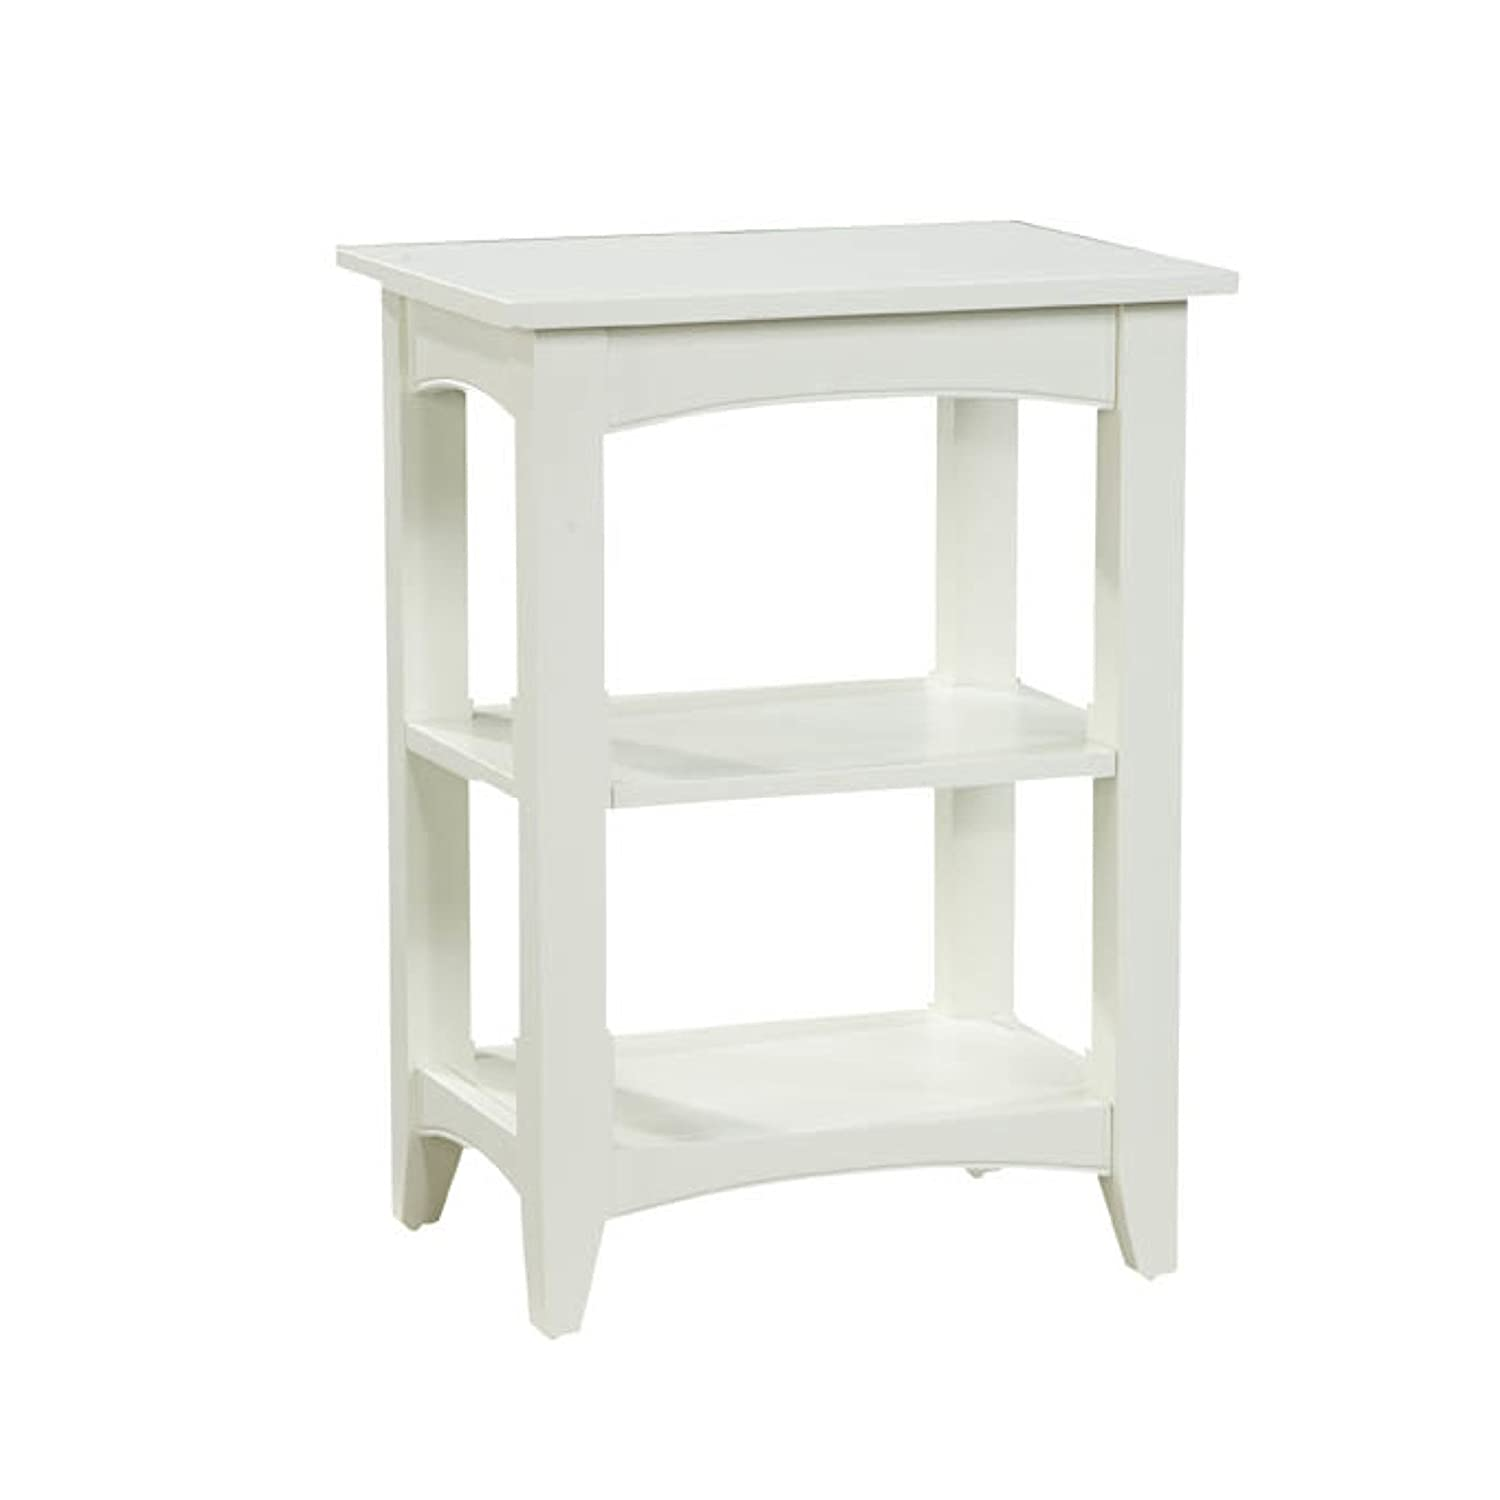 Shaker Cottage End Table with 2 Shelves, Ivory